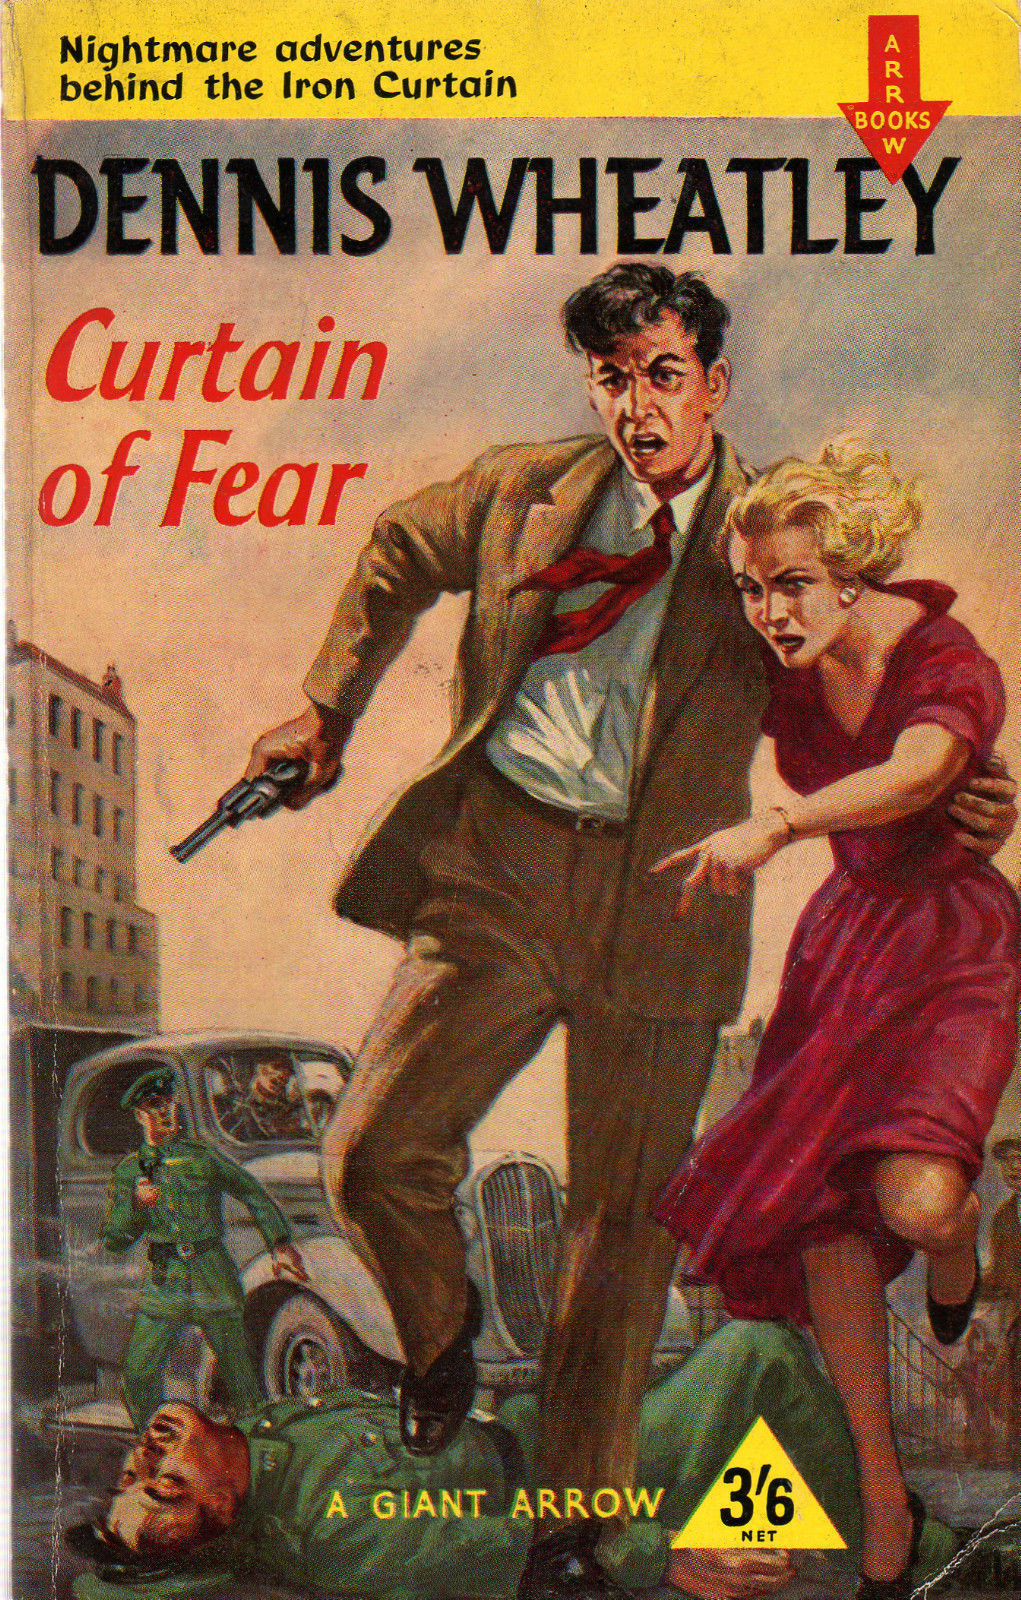 Curtain of Fear published in 1953.